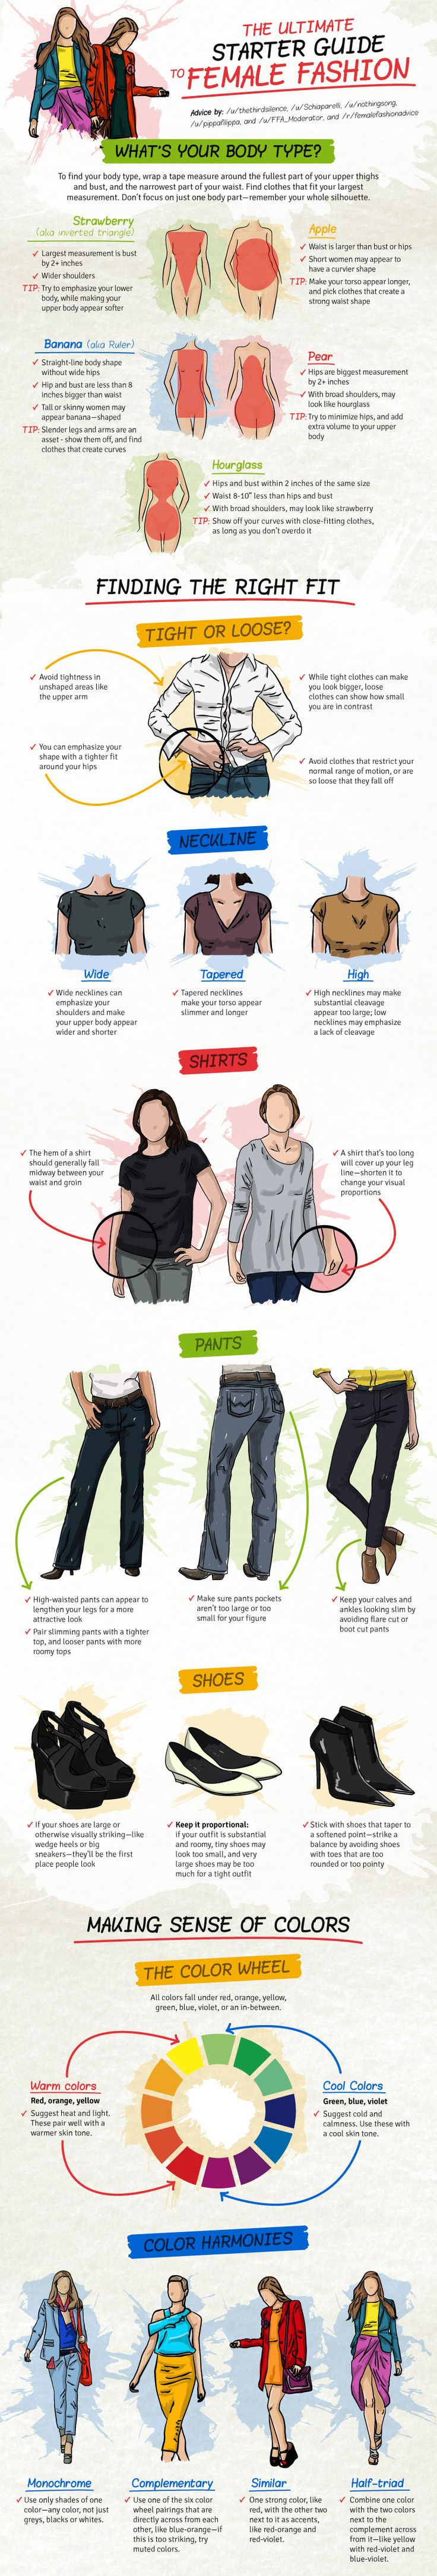 Women's body types and fashion advice